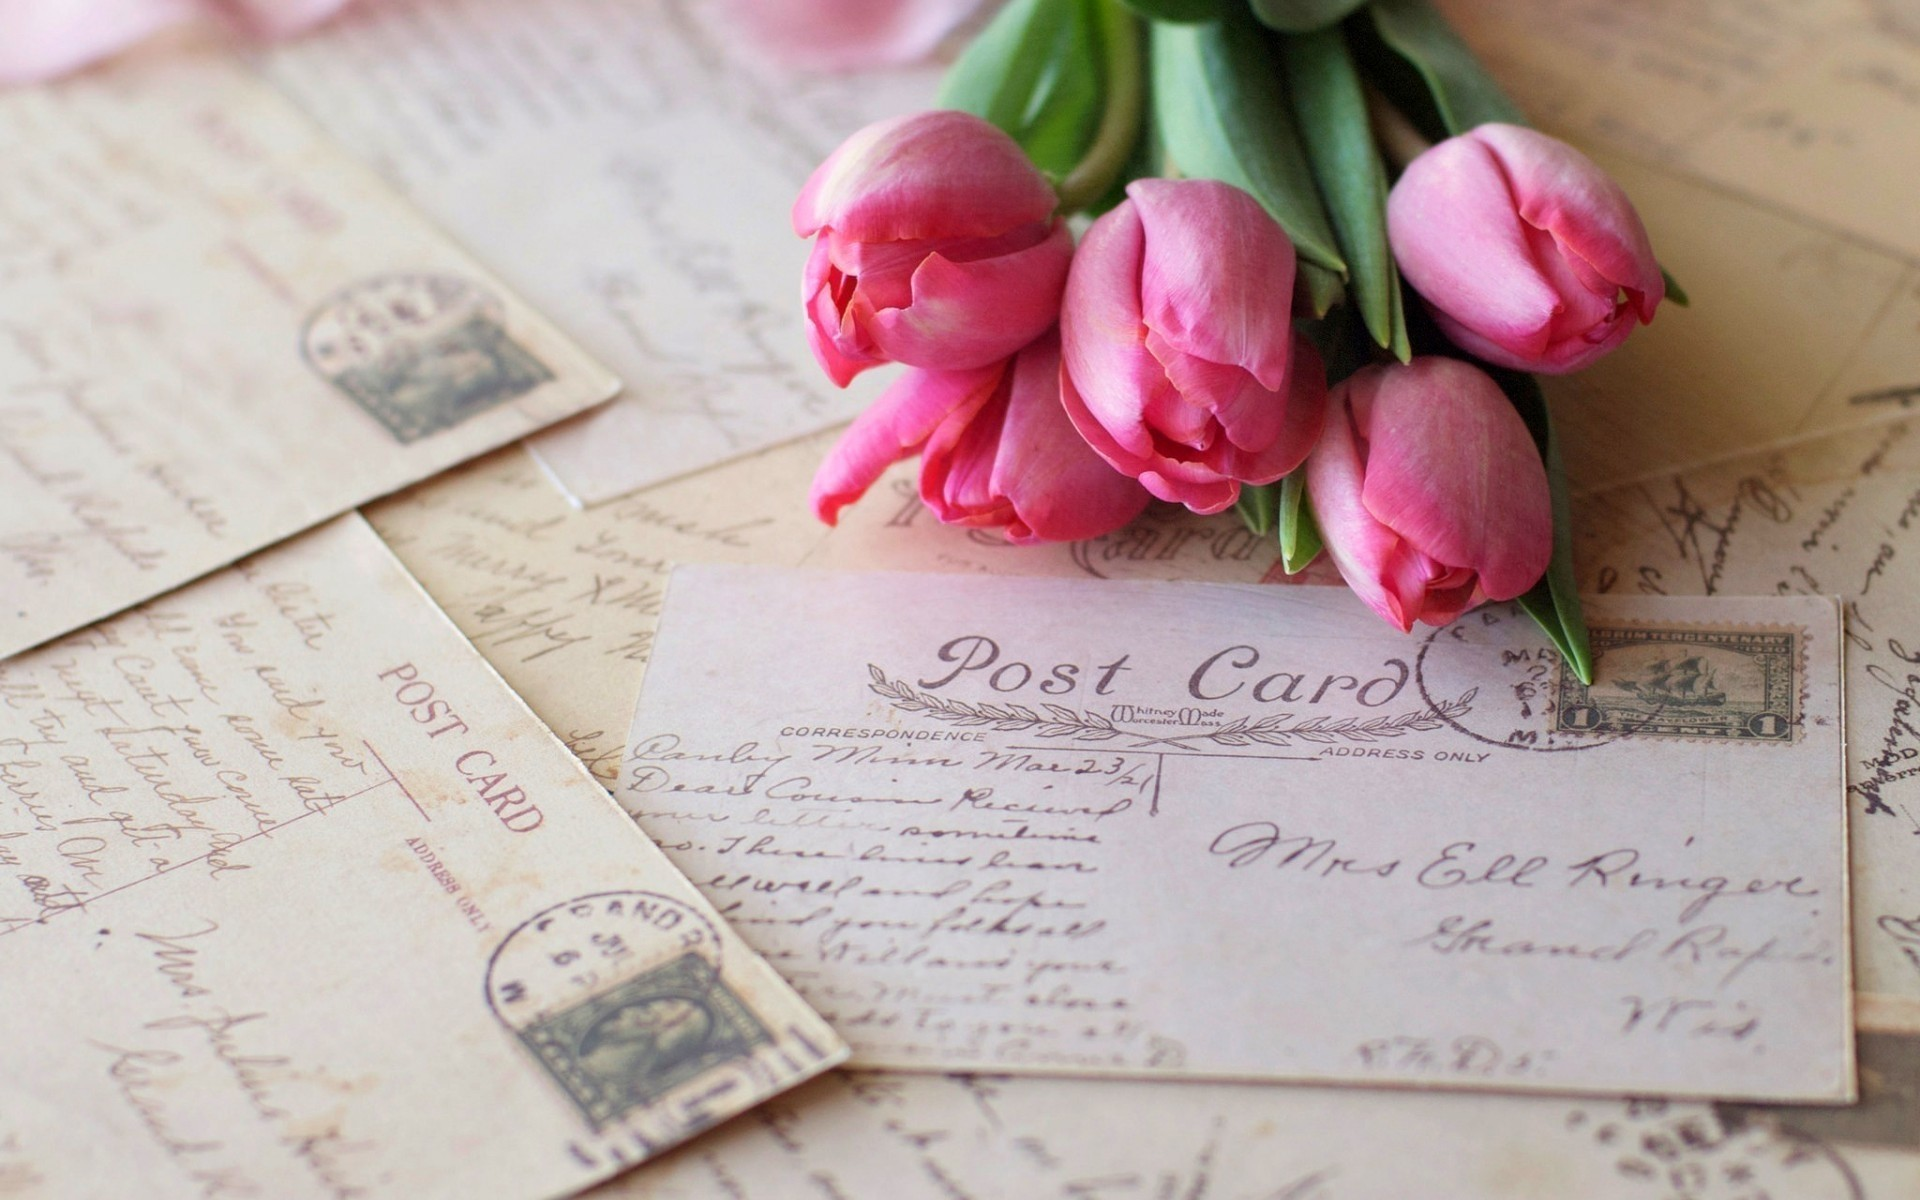 flowers paper love still life romance text card page writing wood tulips pink postcards vintage